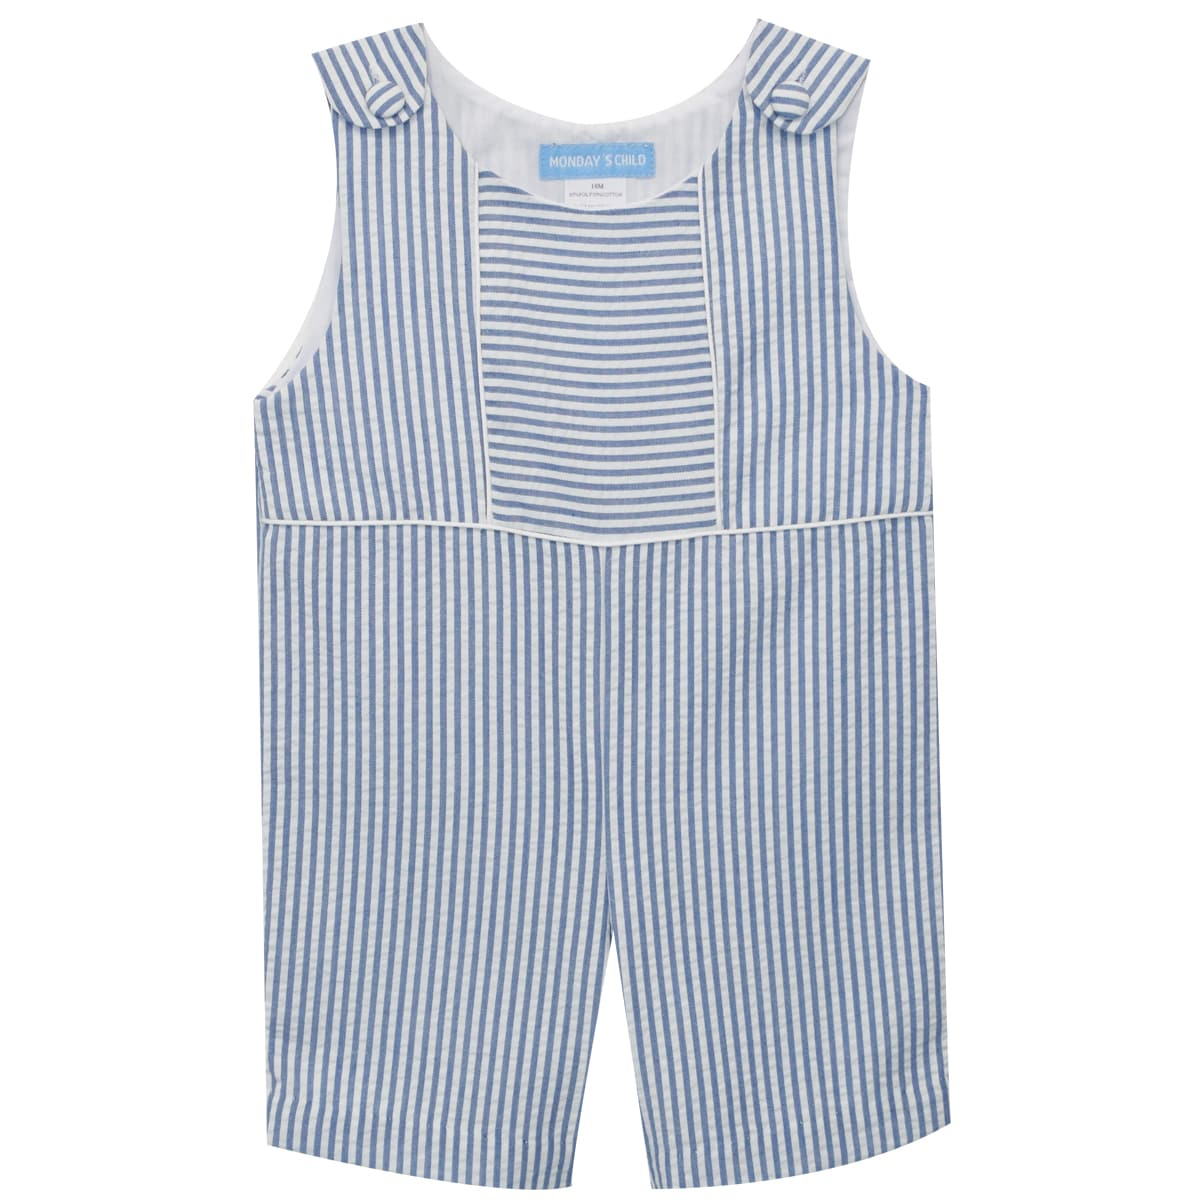 Royal Stripe Boys Shortall - Vive La Fête - Online Apparel Store